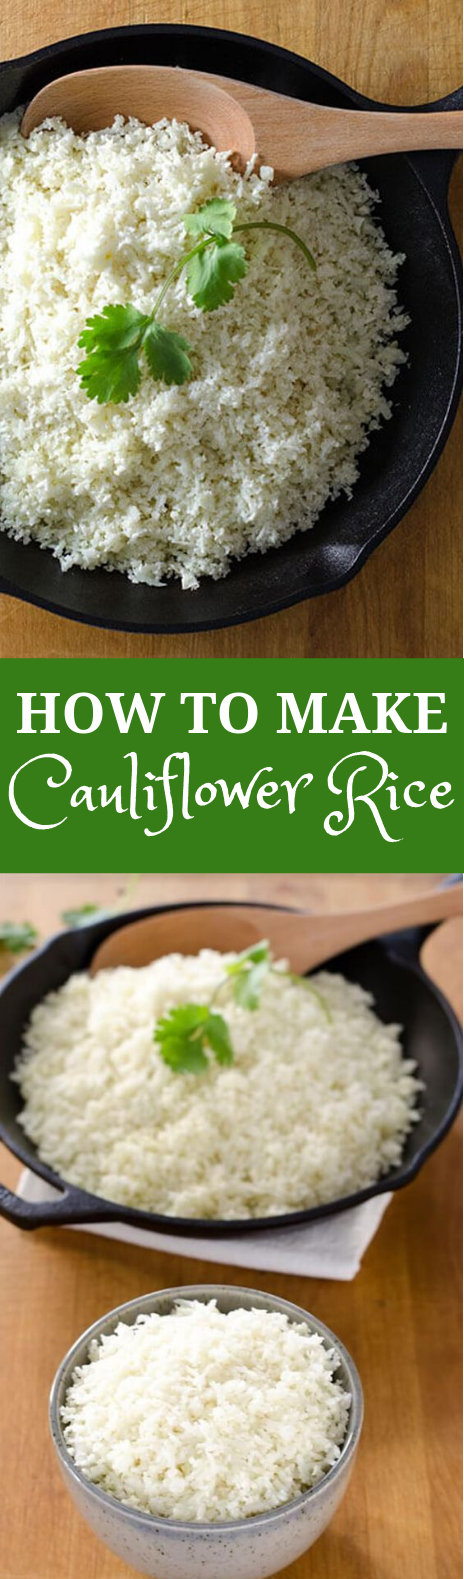 HOW TO MAKE CAULIFLOWER RICE #Cauliflower #Glutenfree